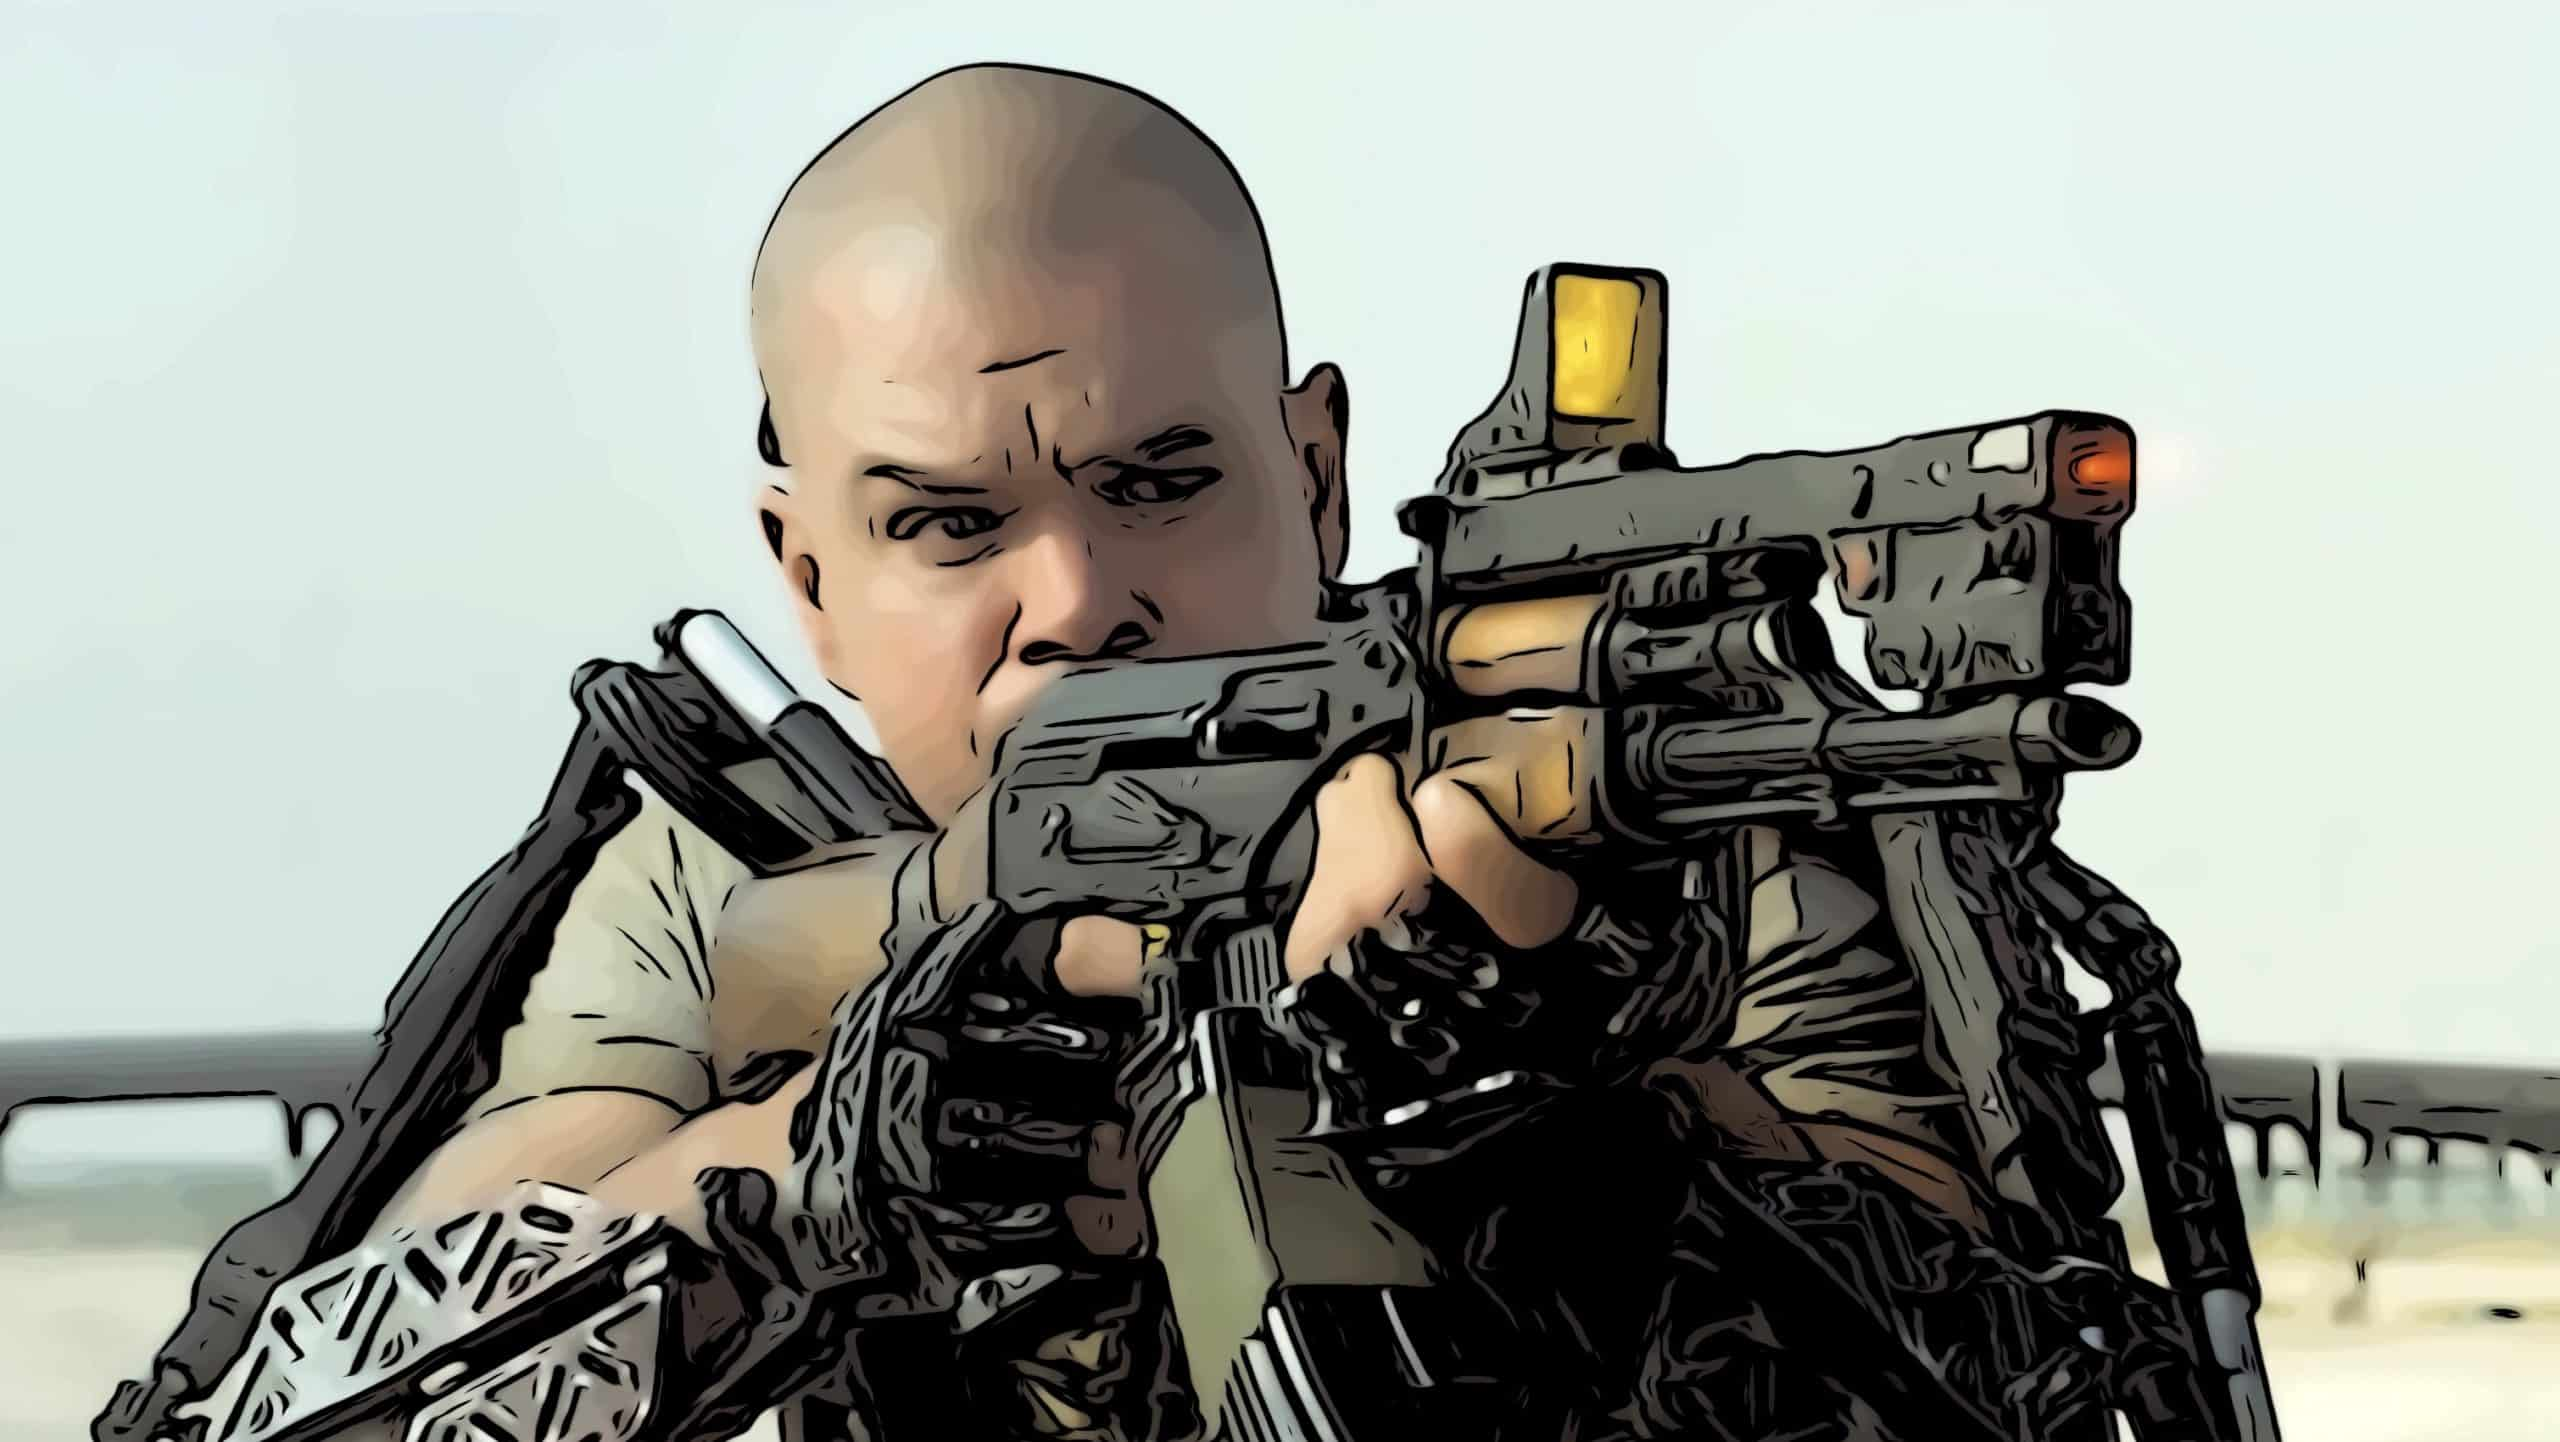 Scene from Elysium for movies like Bloodshot post.